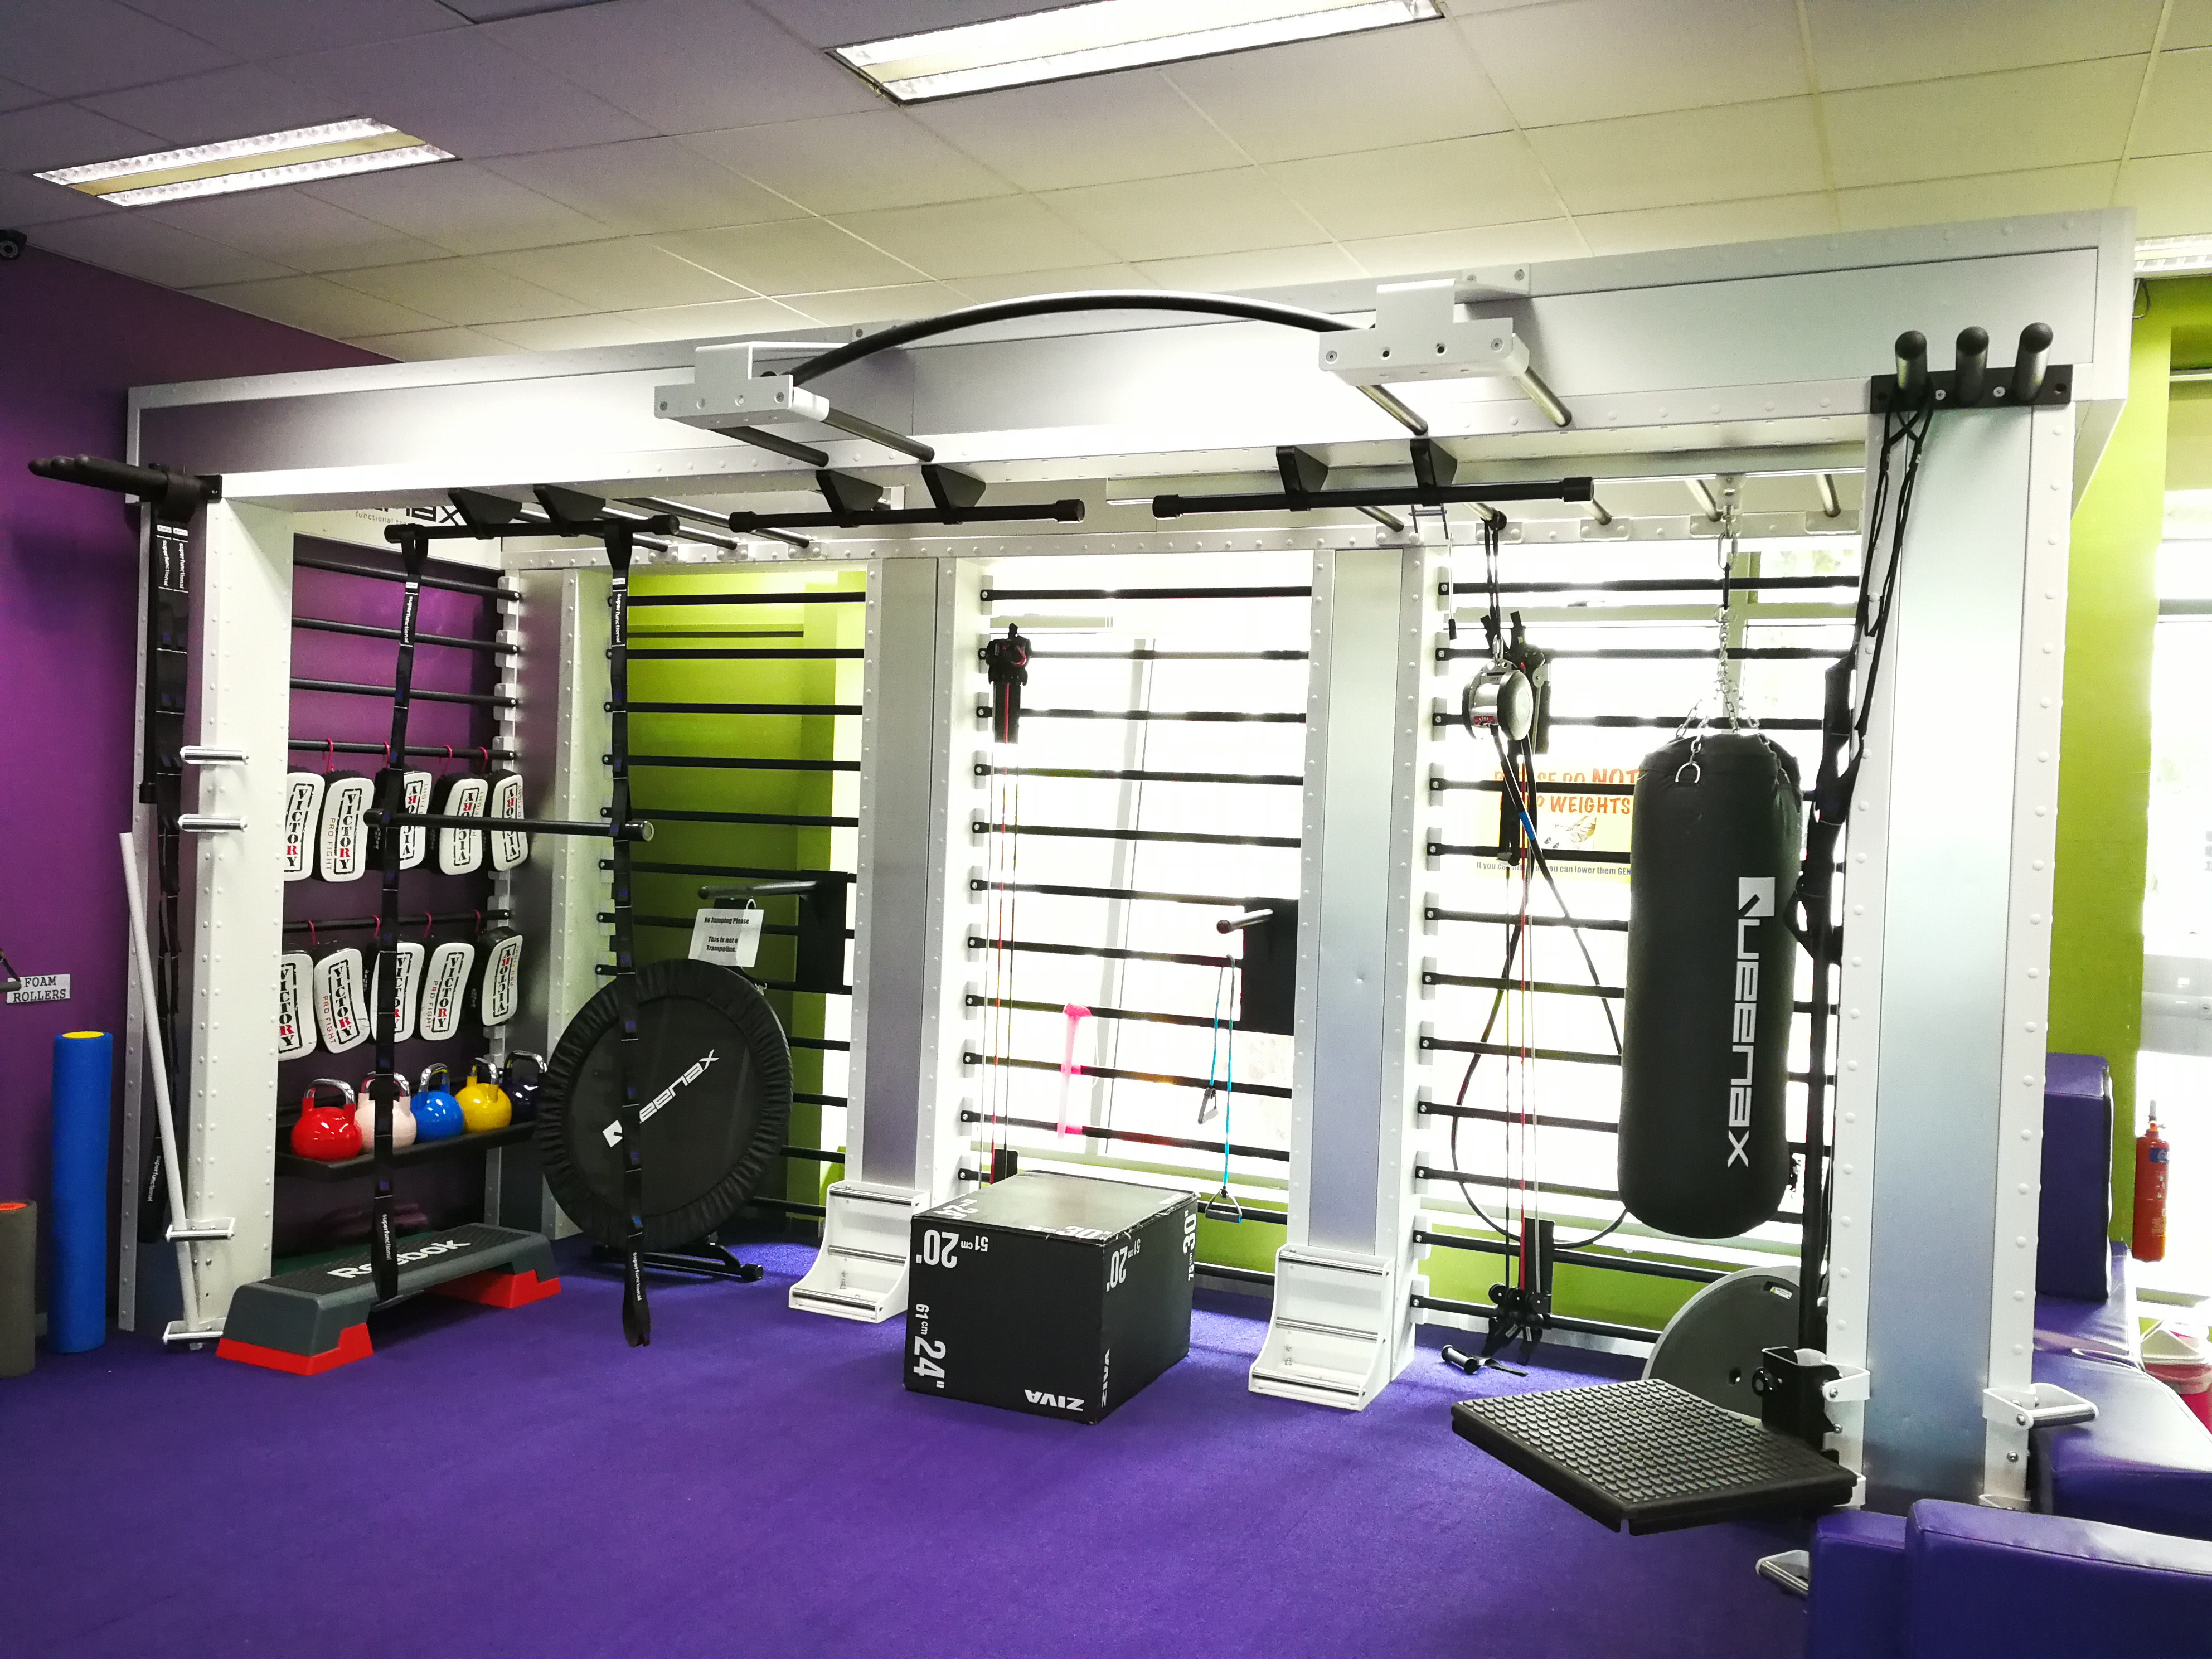 For Beginners Or Users Unfamiliar With Our Equipment We Provide Complimentary Gym Orientations Conducted By Friendly Trainers So That You Will Feel